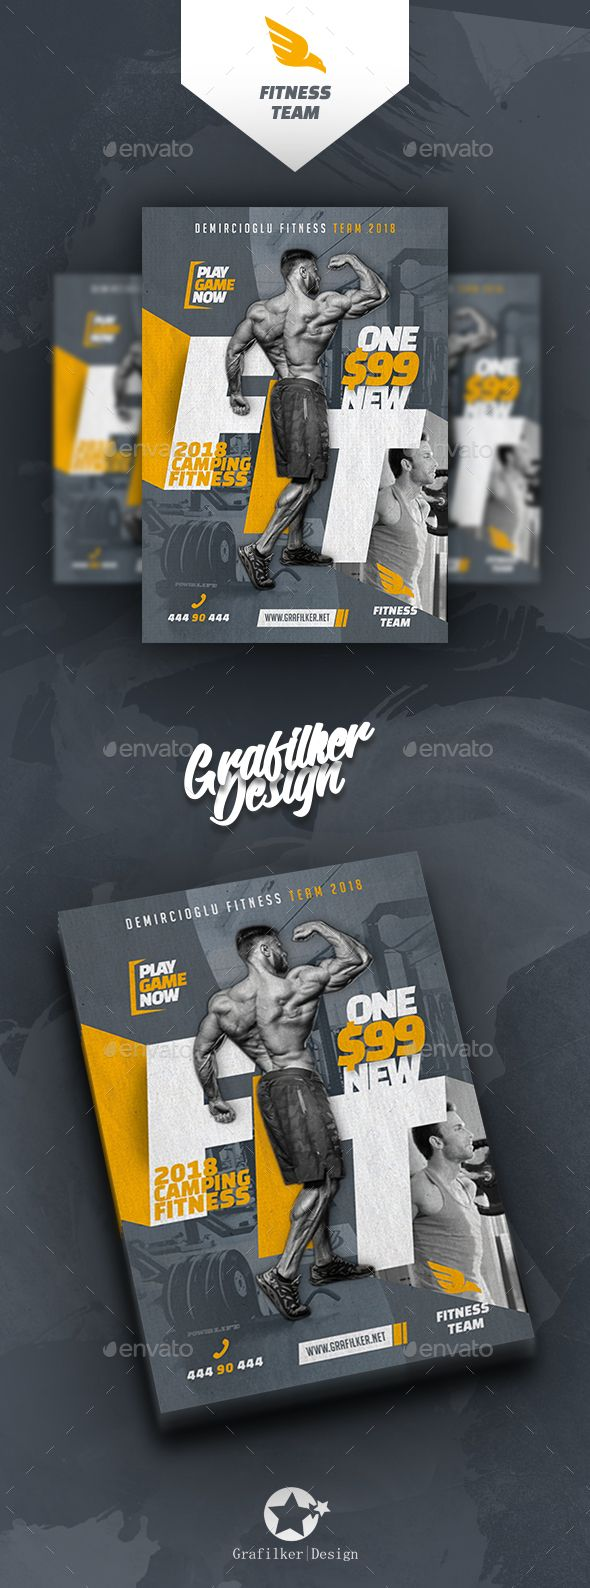 Fitness Time Flyer Template PSD, InDesign INDD | Graphics Assignment ...